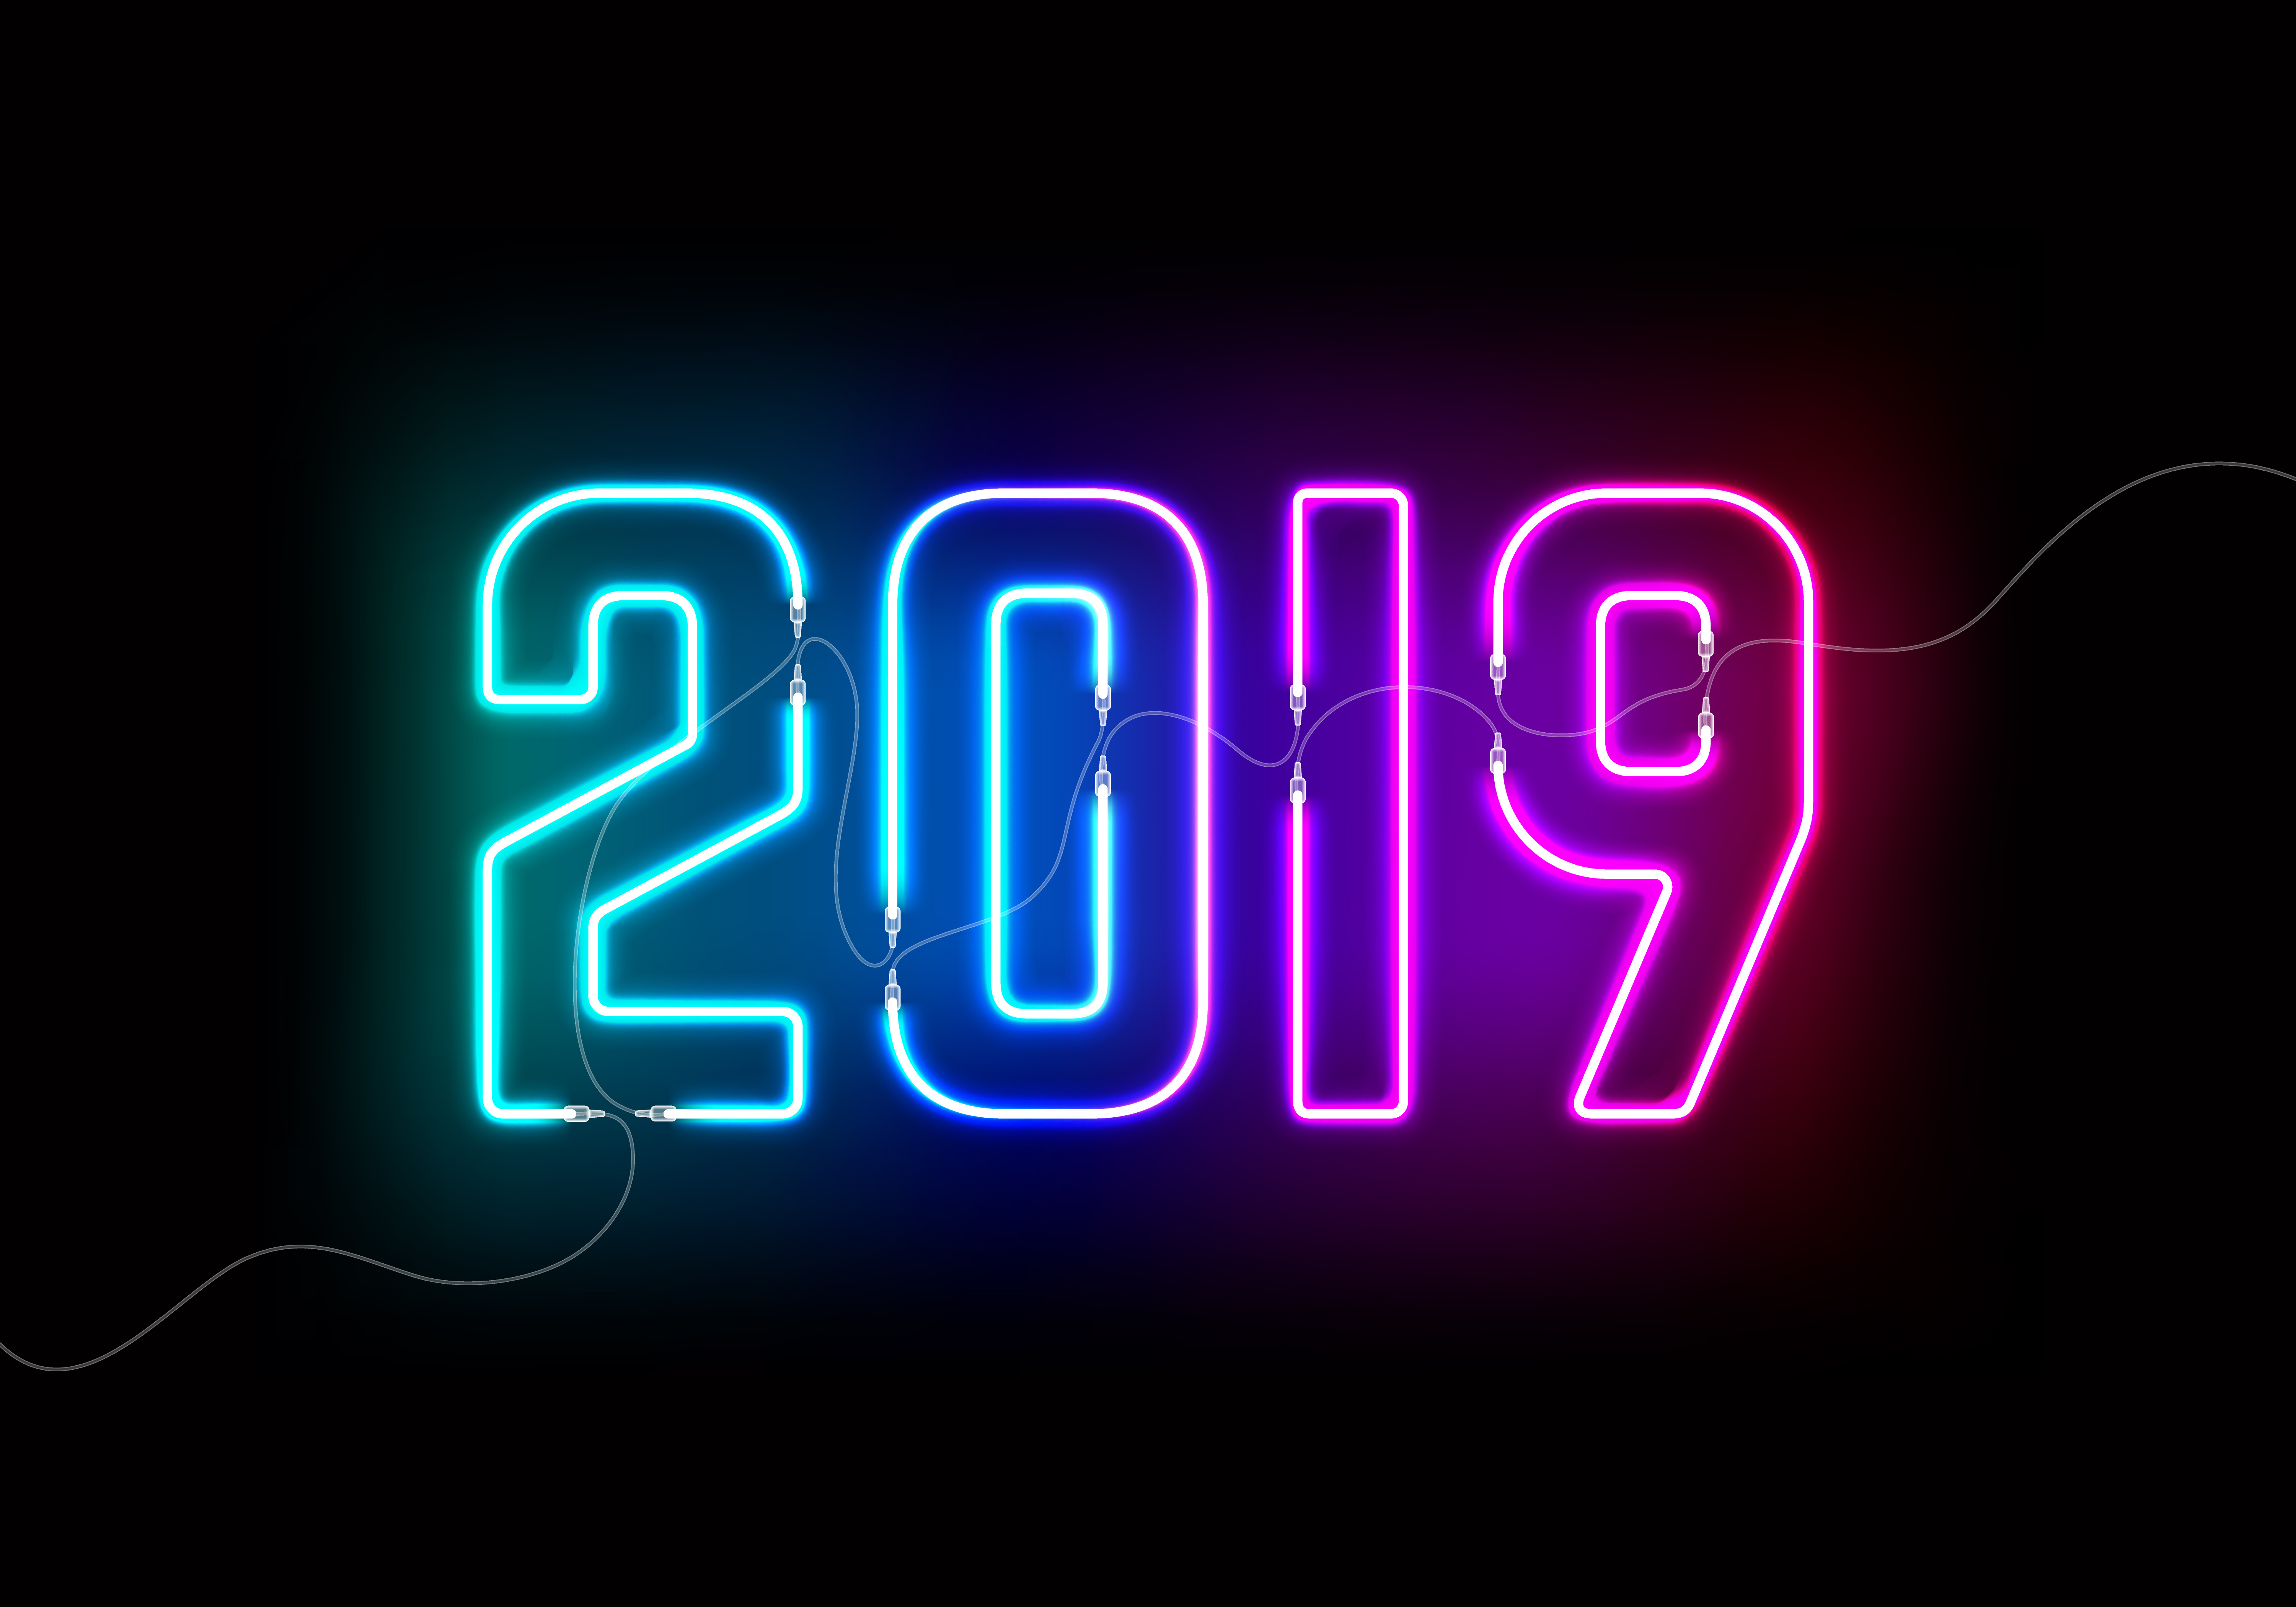 Stock photography of 2019 written in neon lights